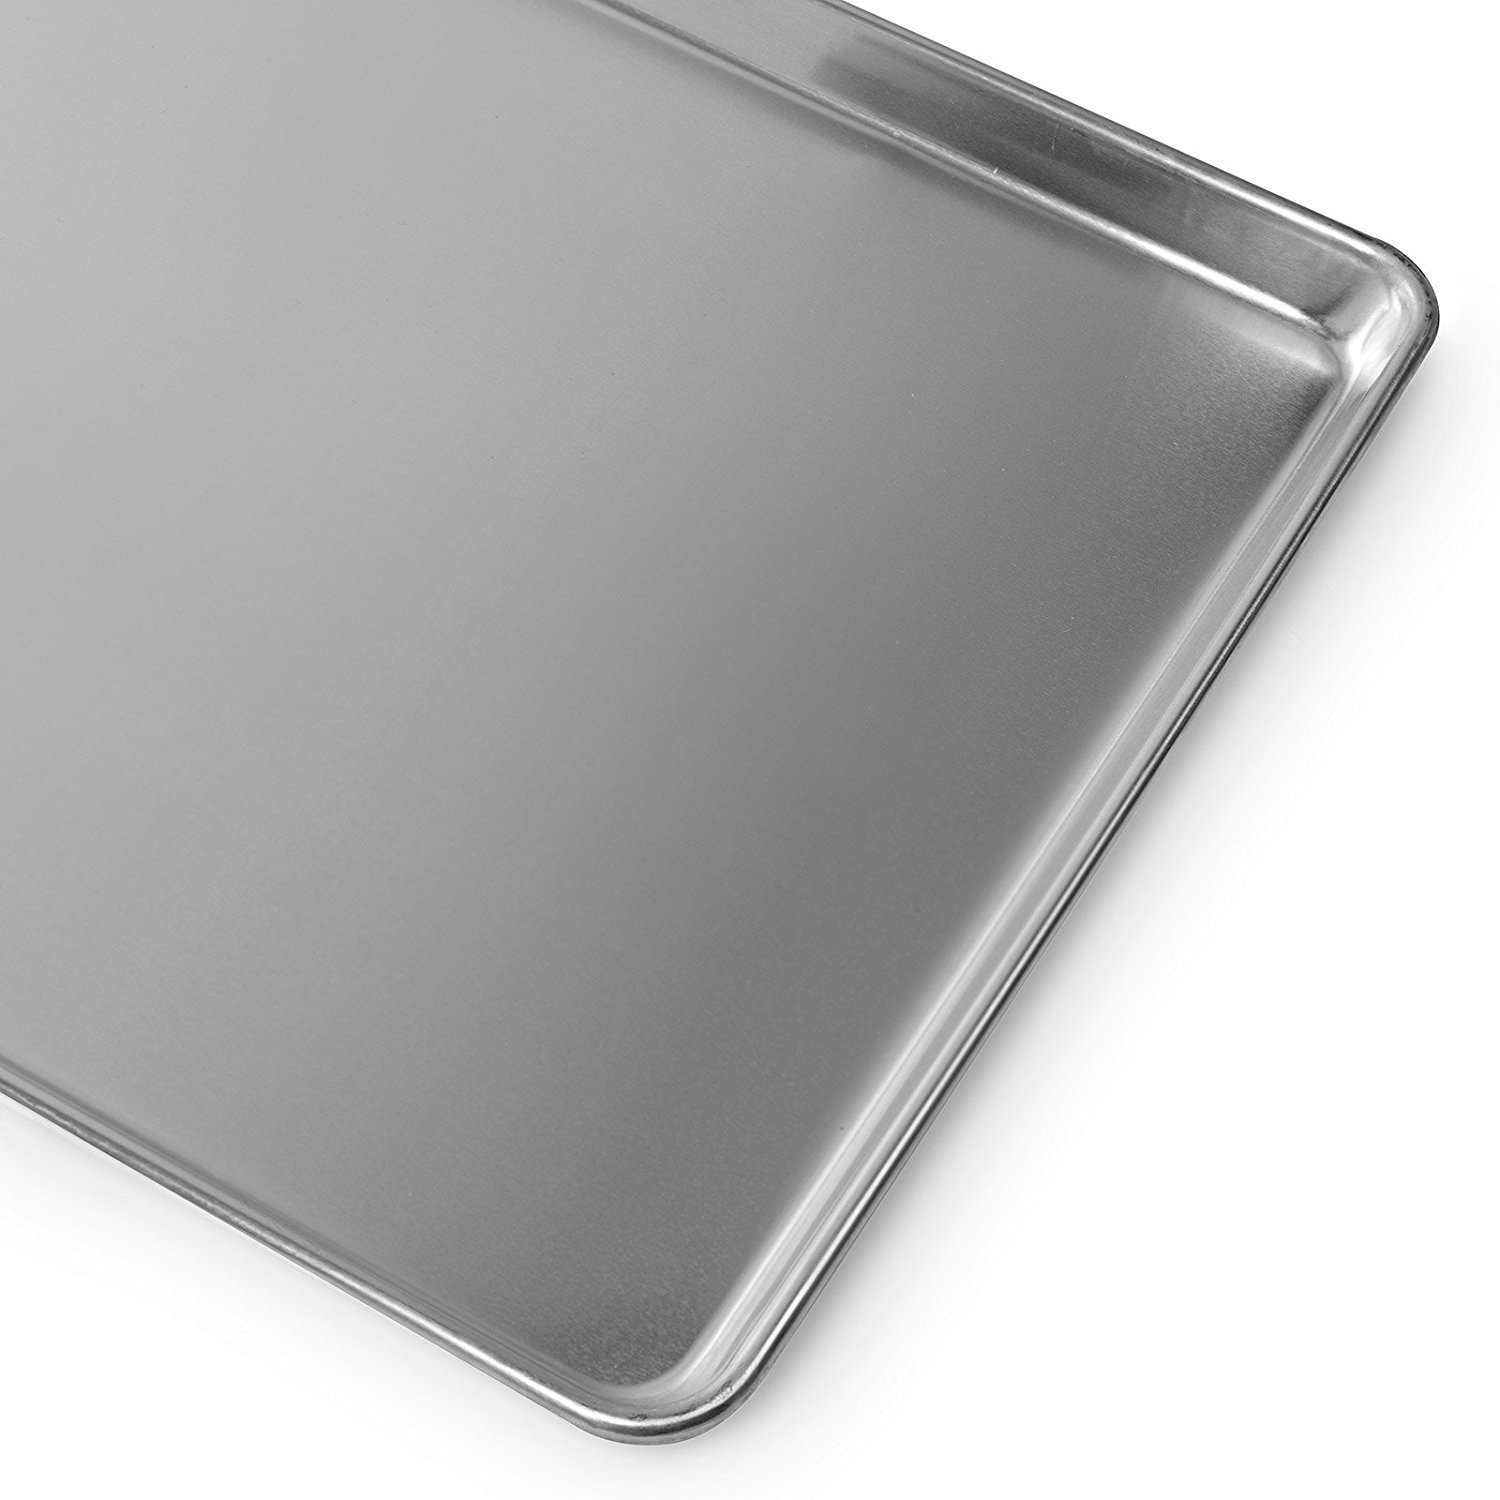 Gridmann 13 X 18 Commercial Grade Aluminium Cookie Sheet